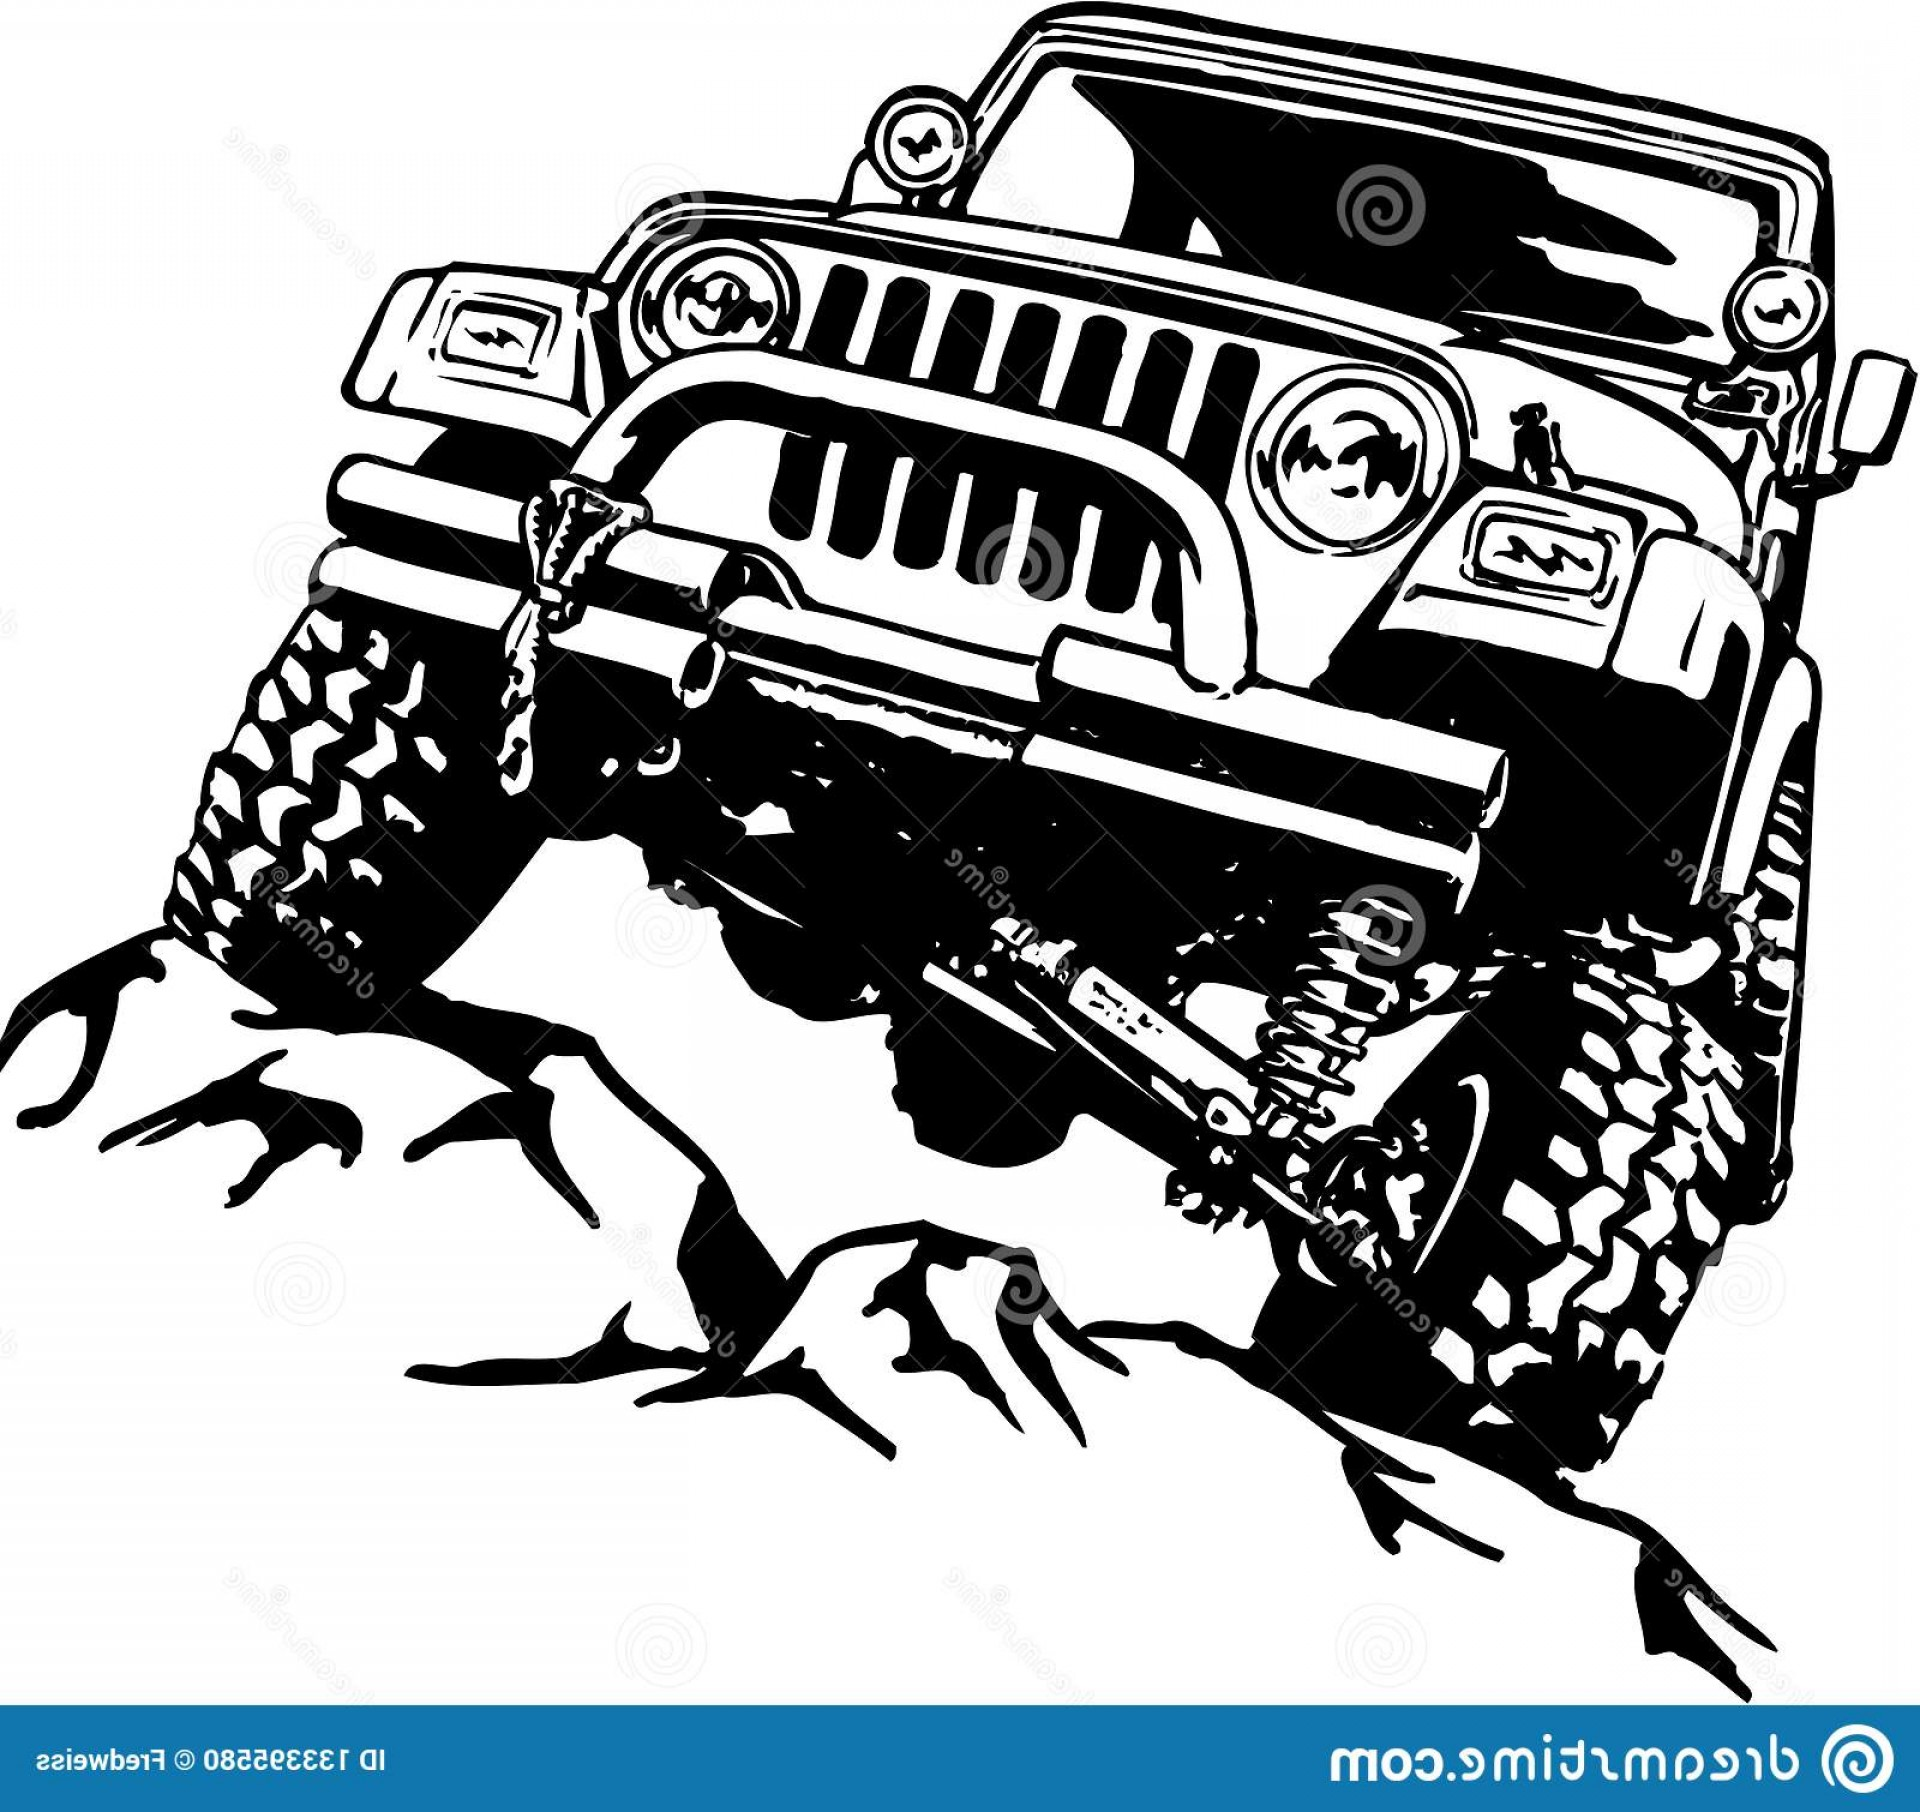 Vector Clip Art Of Jeep: Classic Jeep Illustration Vector Illustration Classic Jeep Image